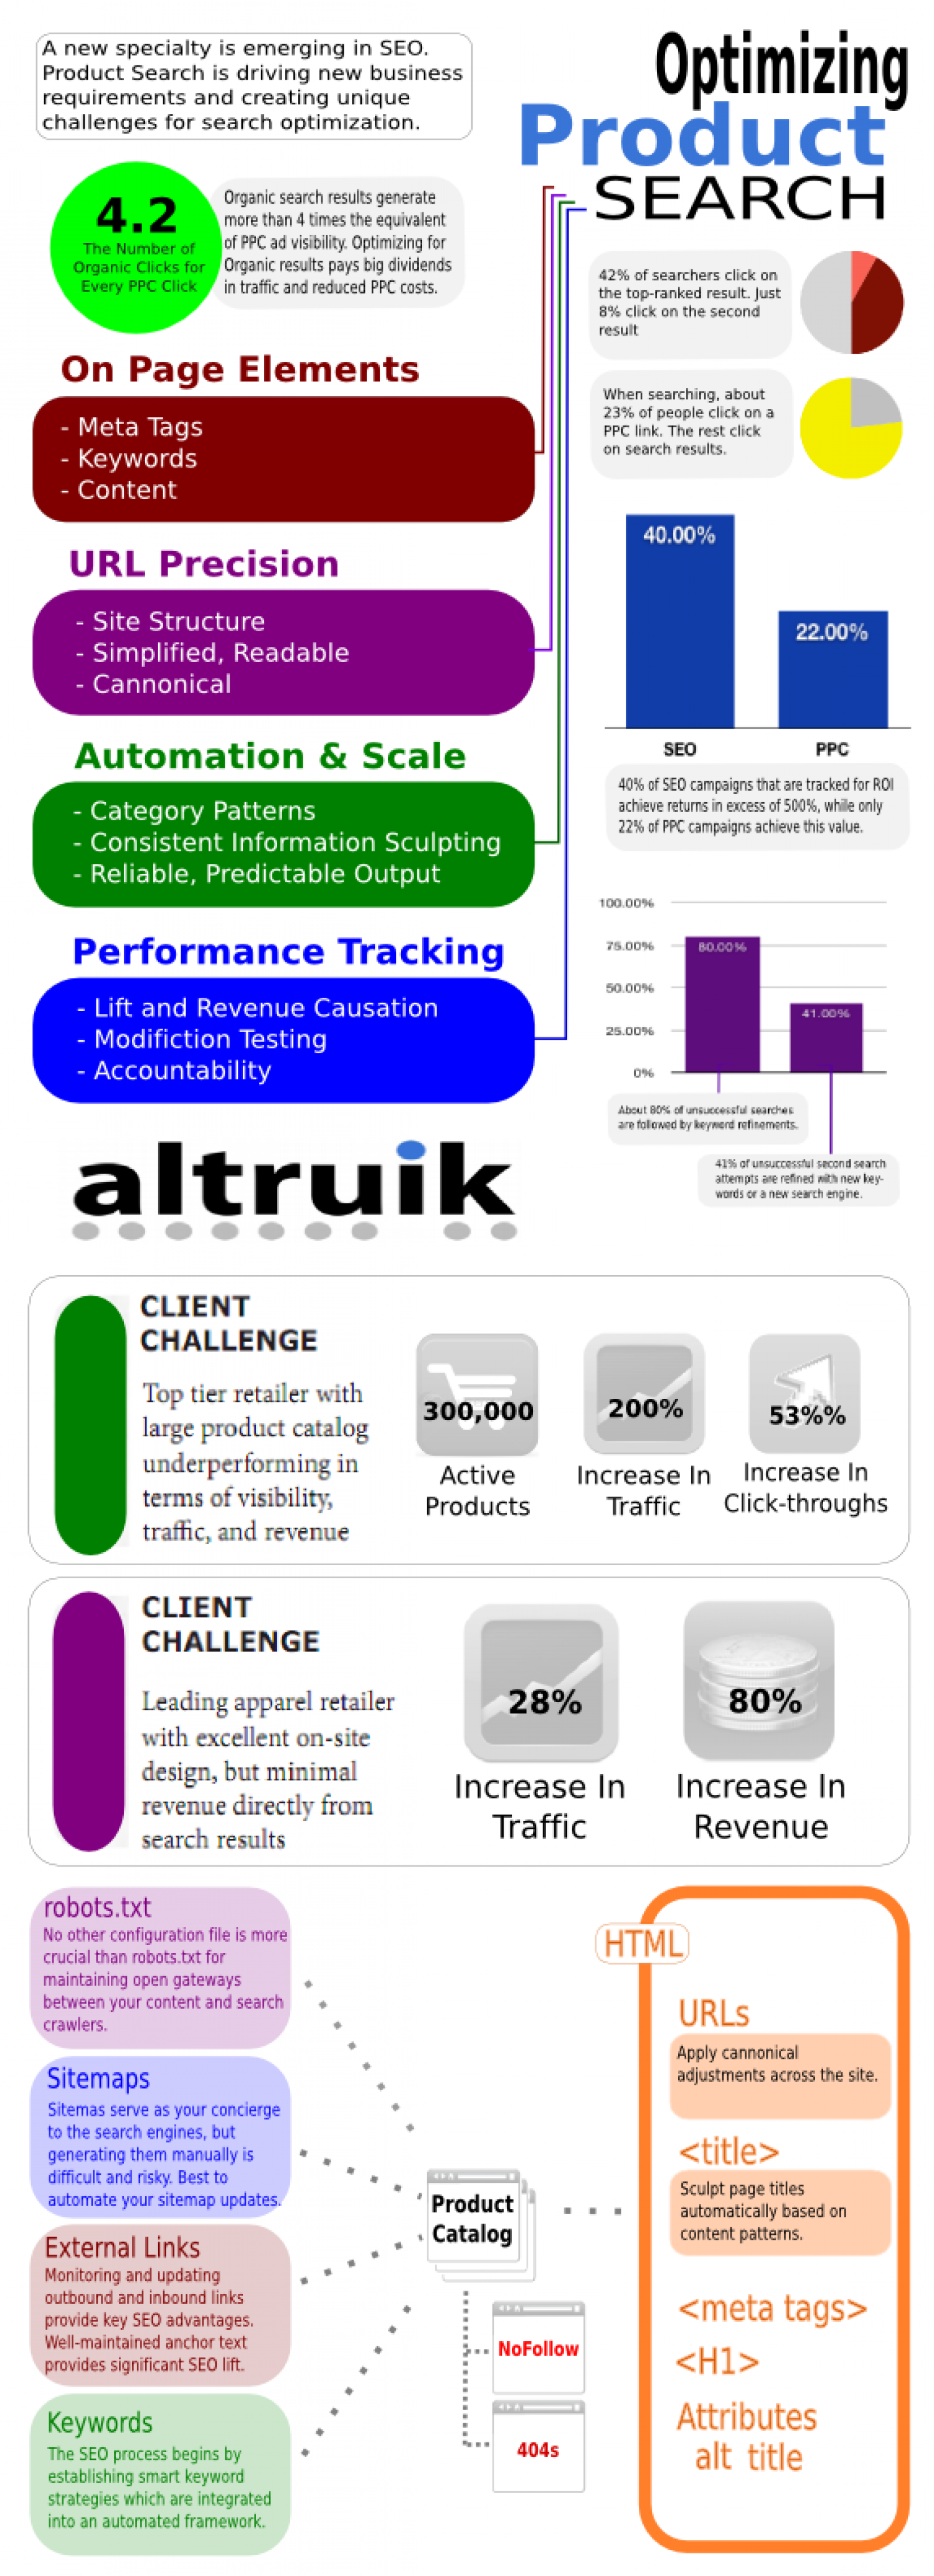 Optimizing Product Search Infographic